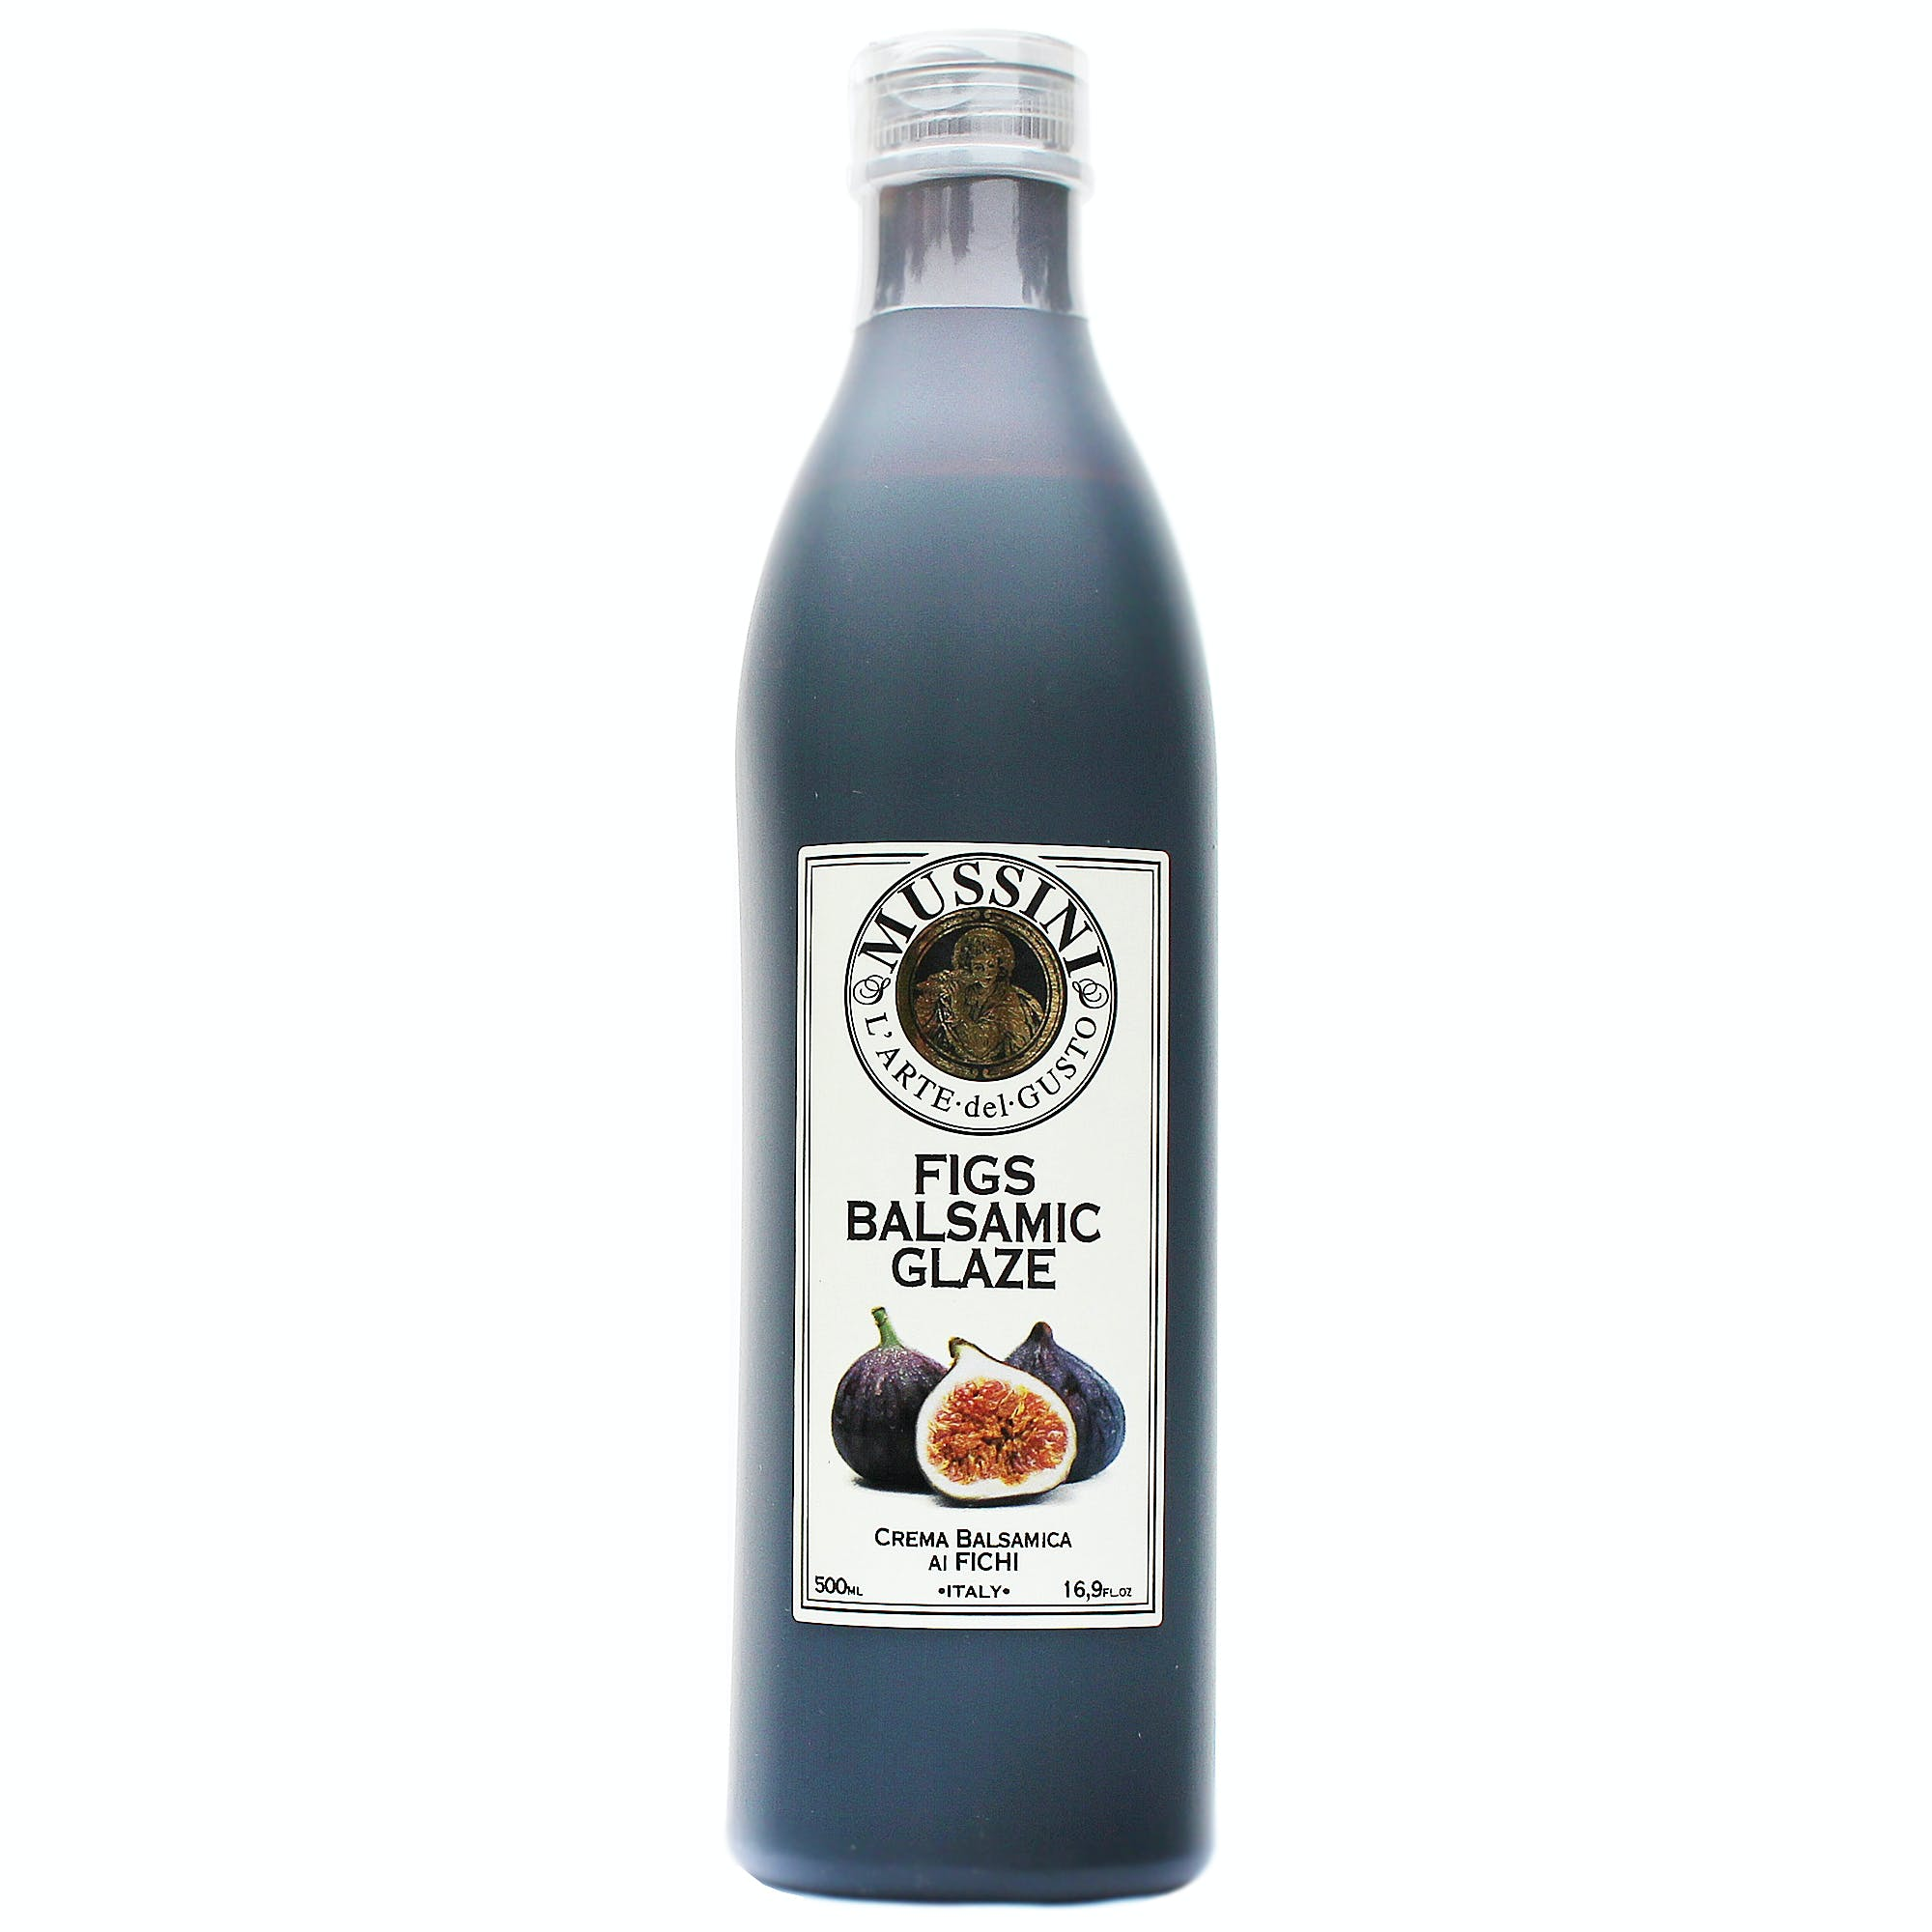 Italian Fig Balsamic Glazes From Mussini, 16.9 Ounces - sold by M5 Corporation